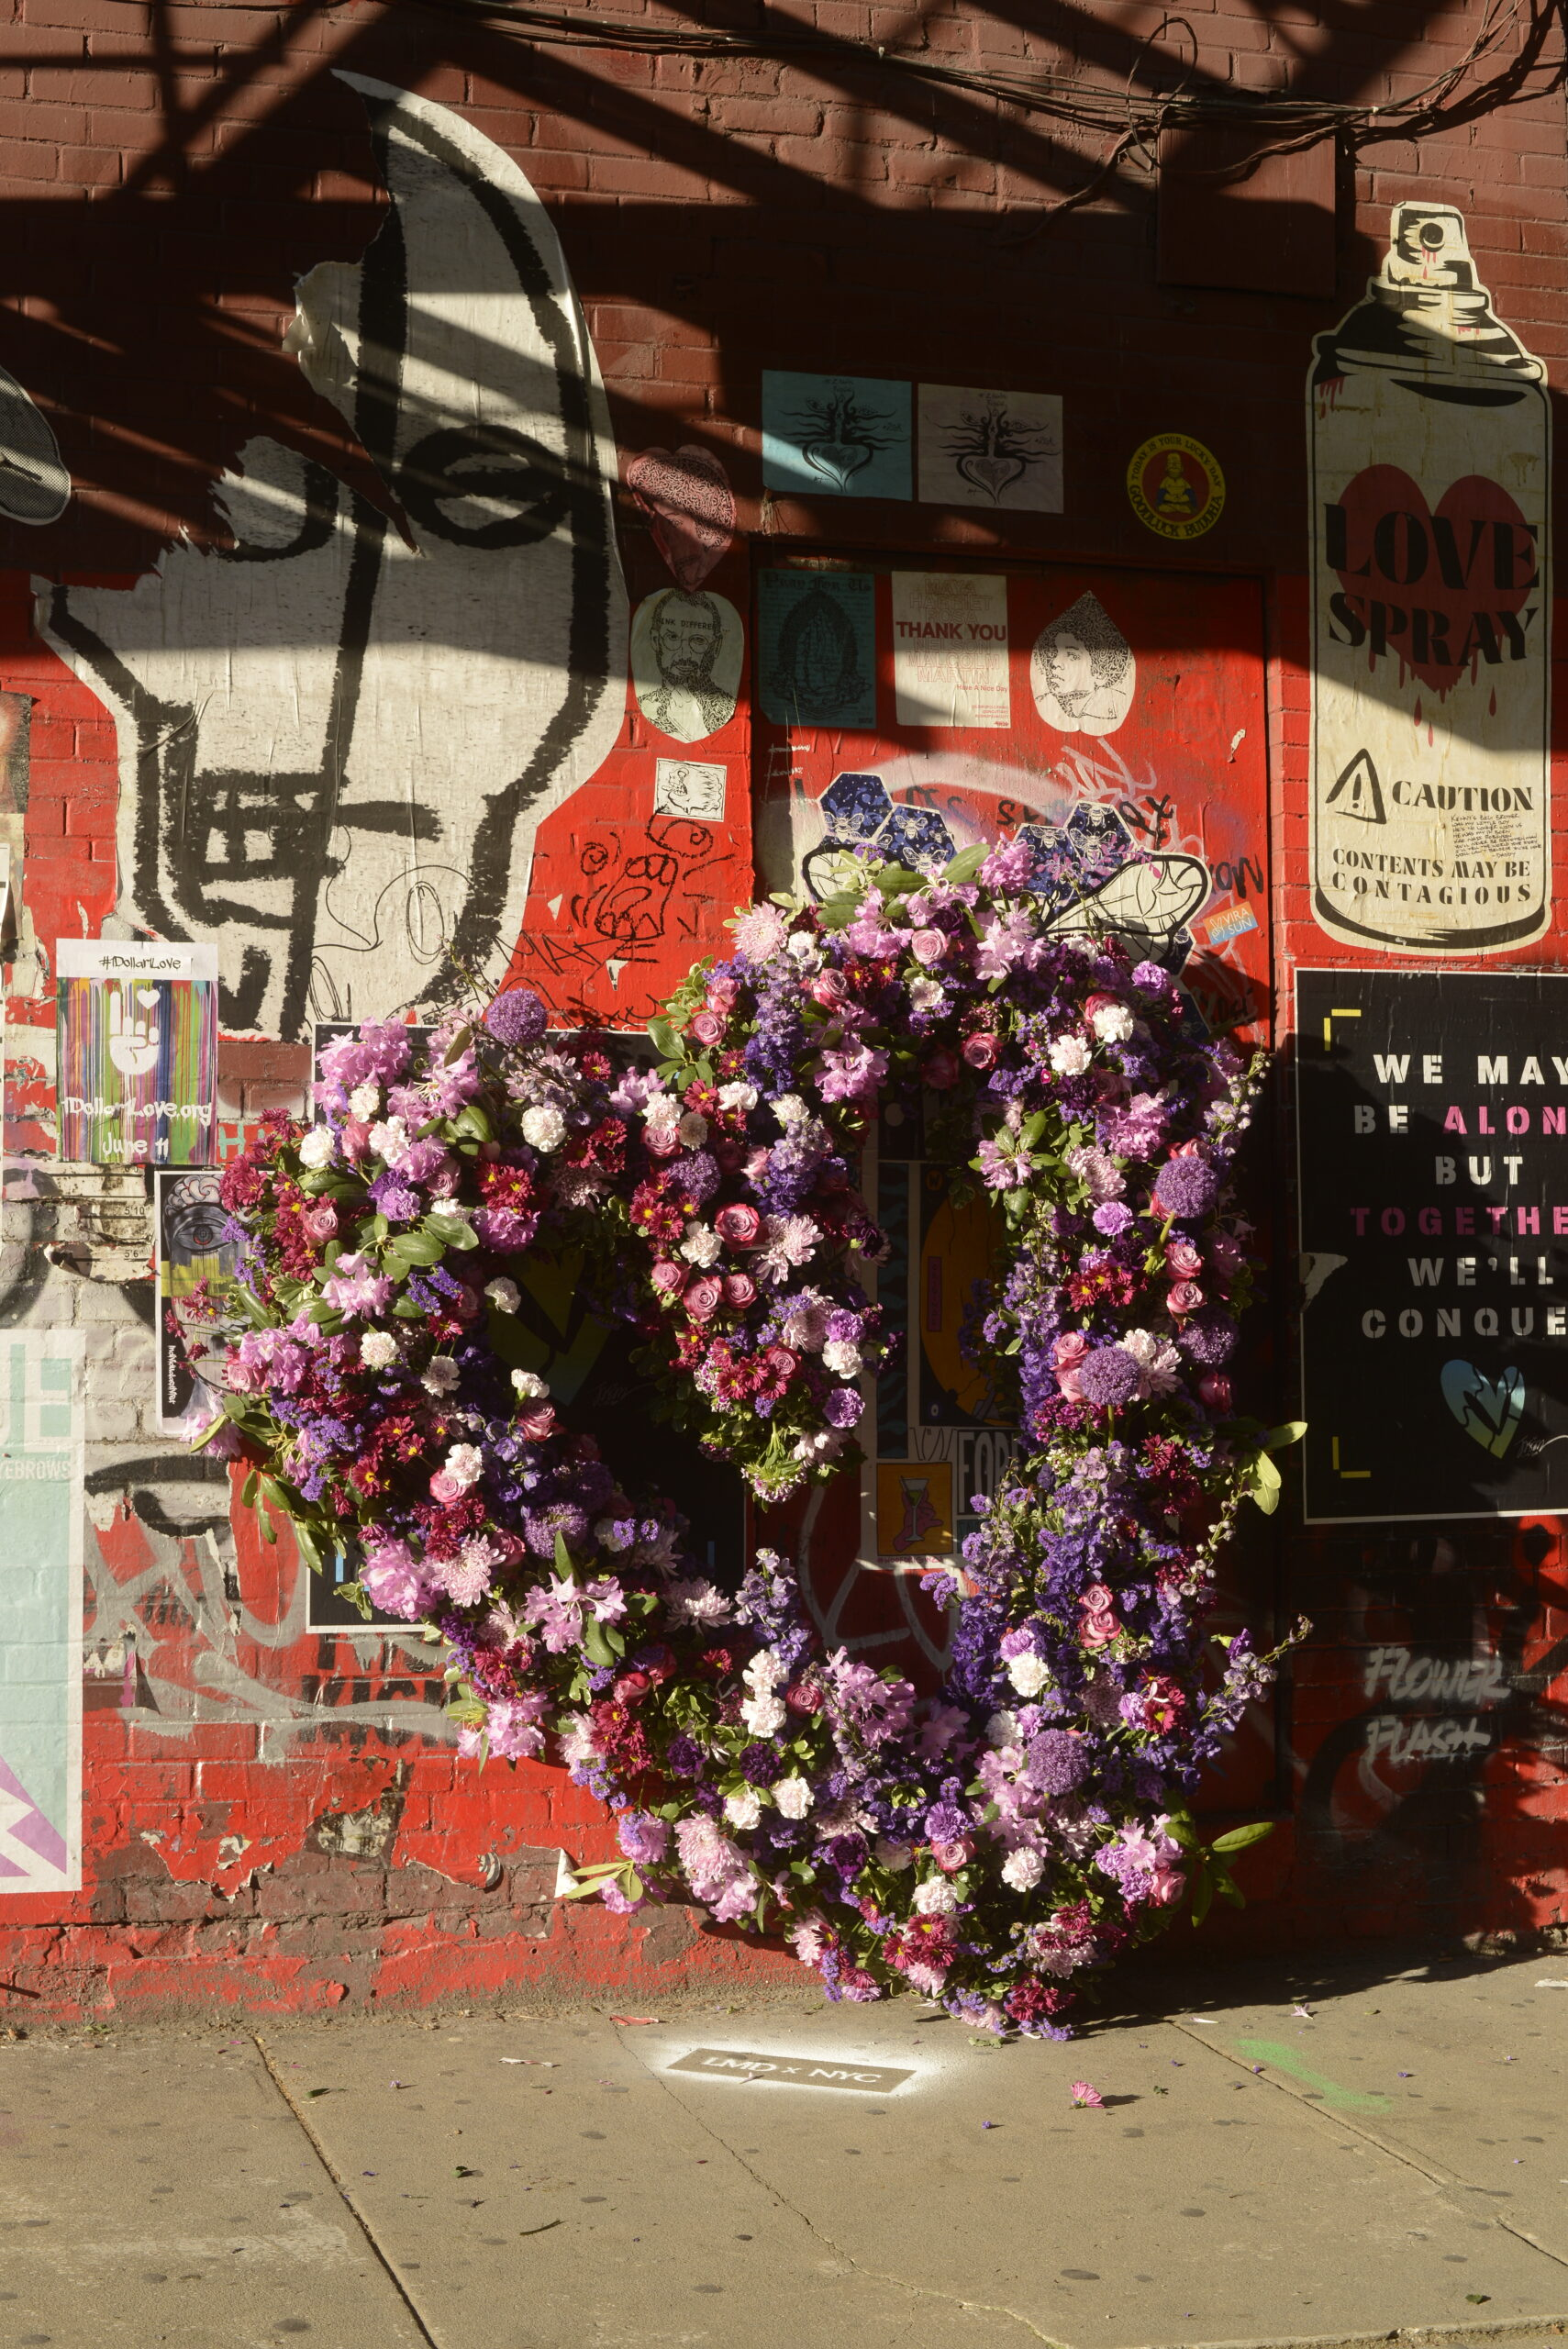 L.E.A.F Festival of Flowers Blooms in the Meatpacking District